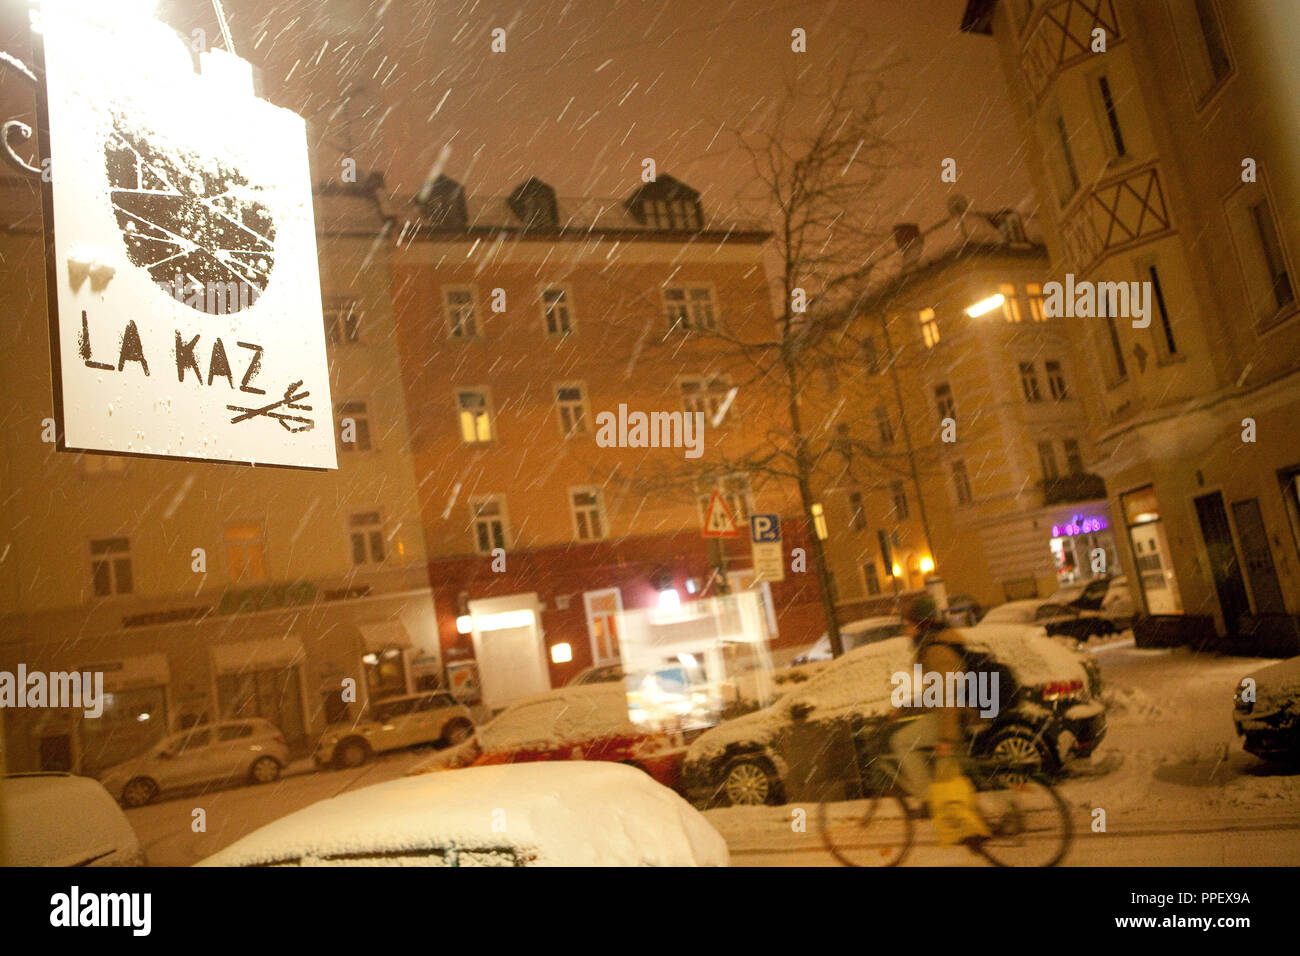 Sign of the restaurant 'La Kaz' in the Kazmairstrasse on the Schwanthalerhoehe, a few days before the official opening. - Stock Image